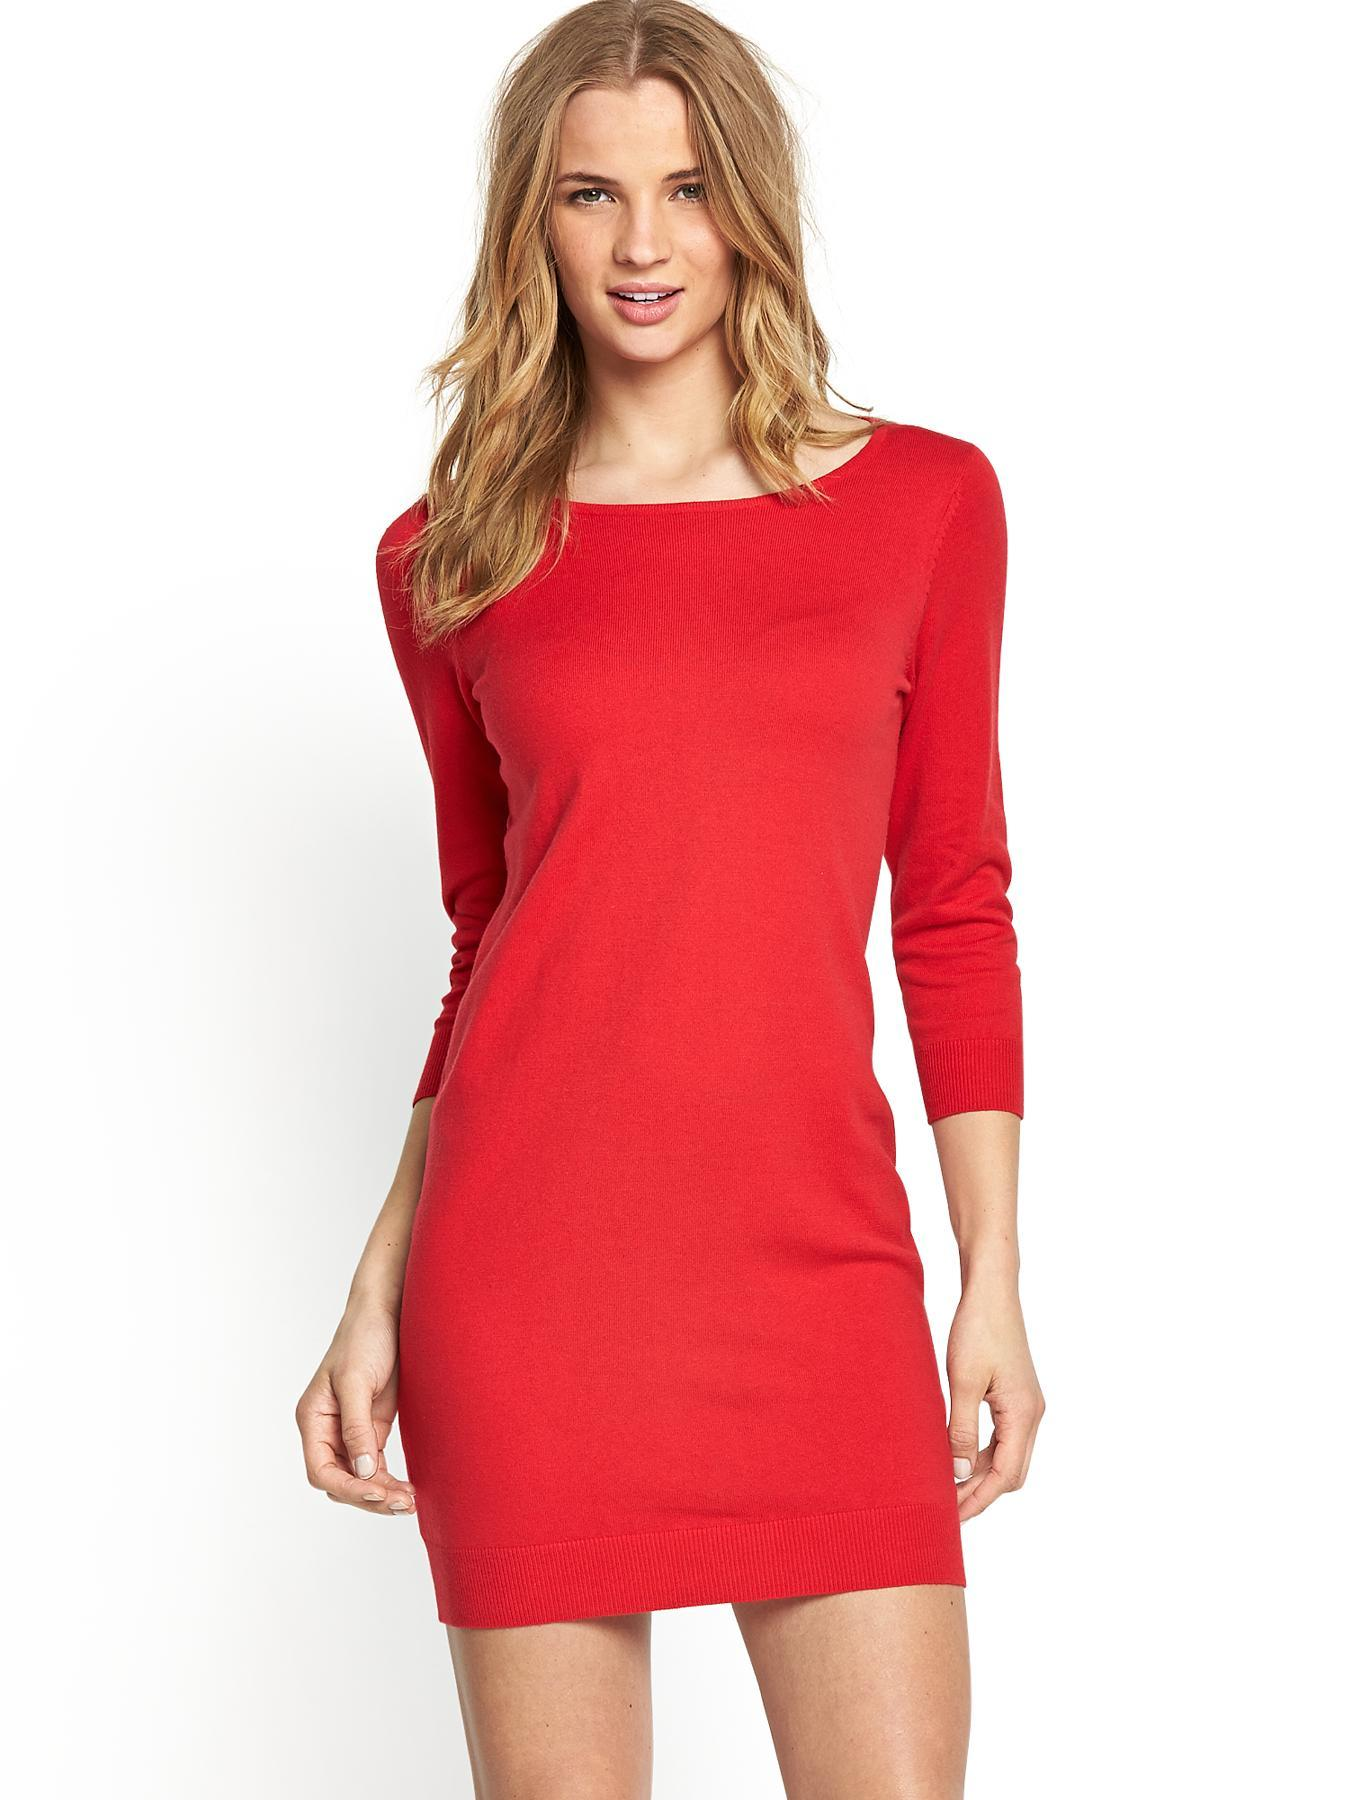 Lightweight Strech Knit Dress, Red,Black